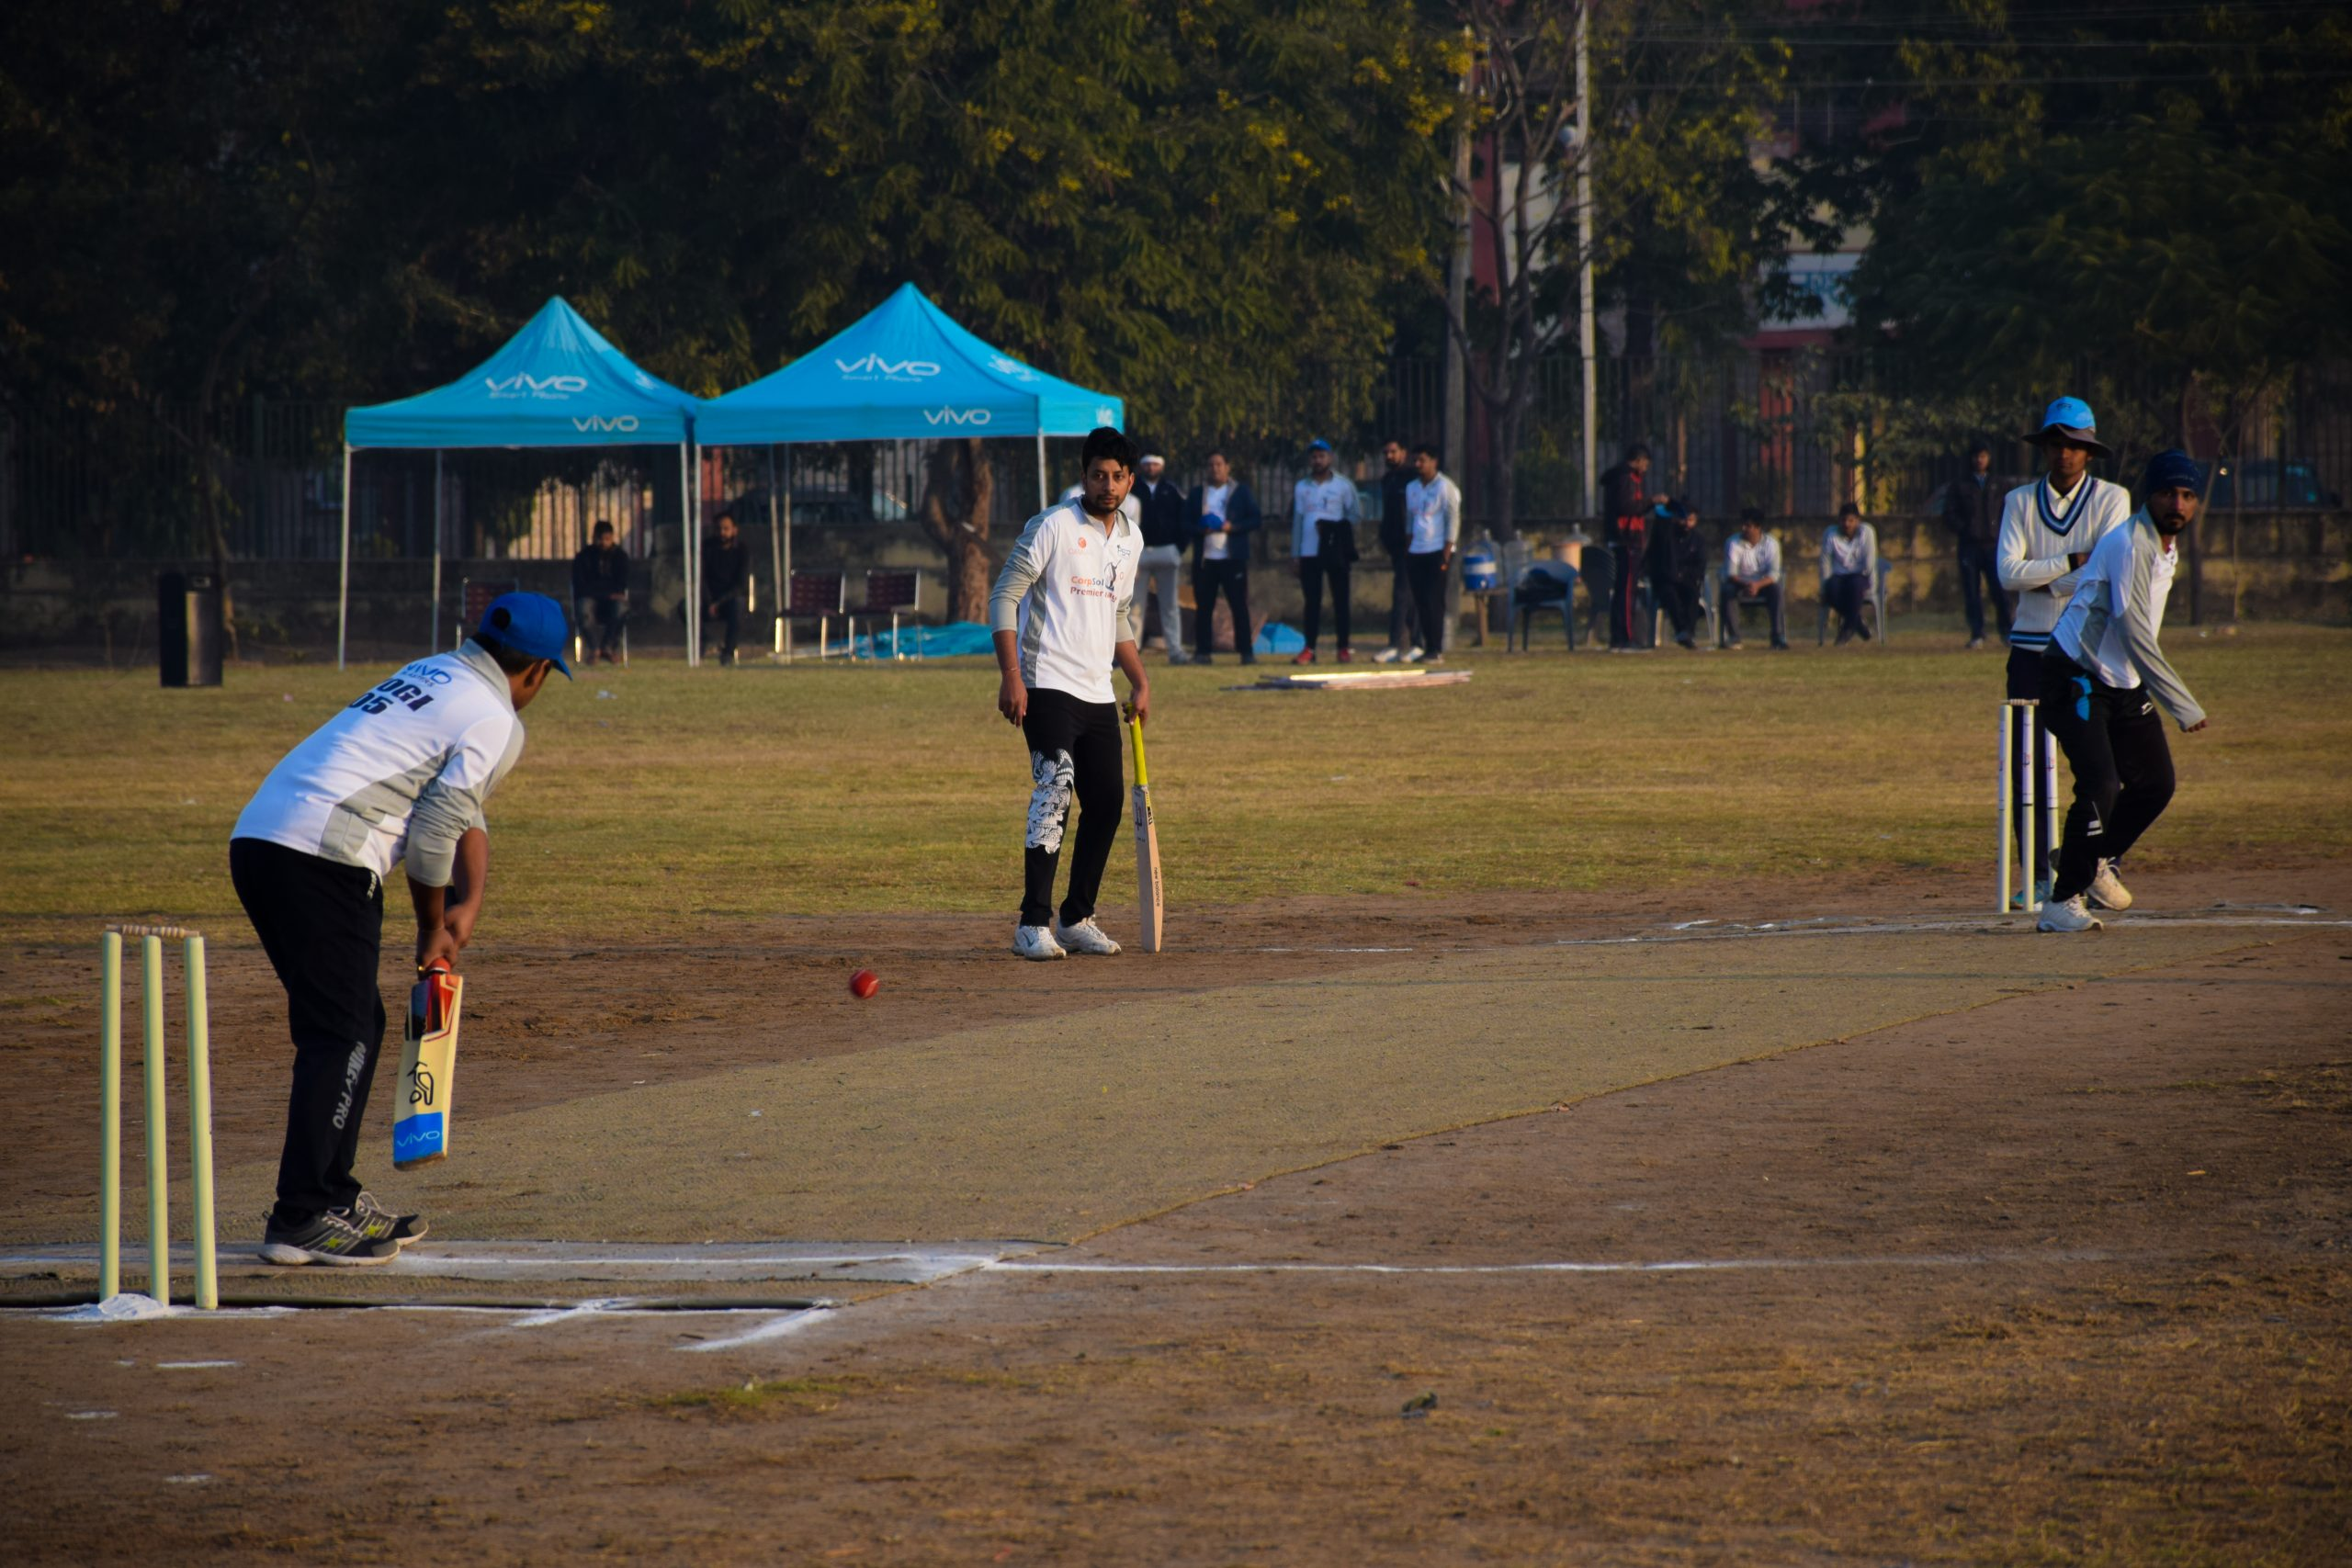 Boys playing cricket in a ground